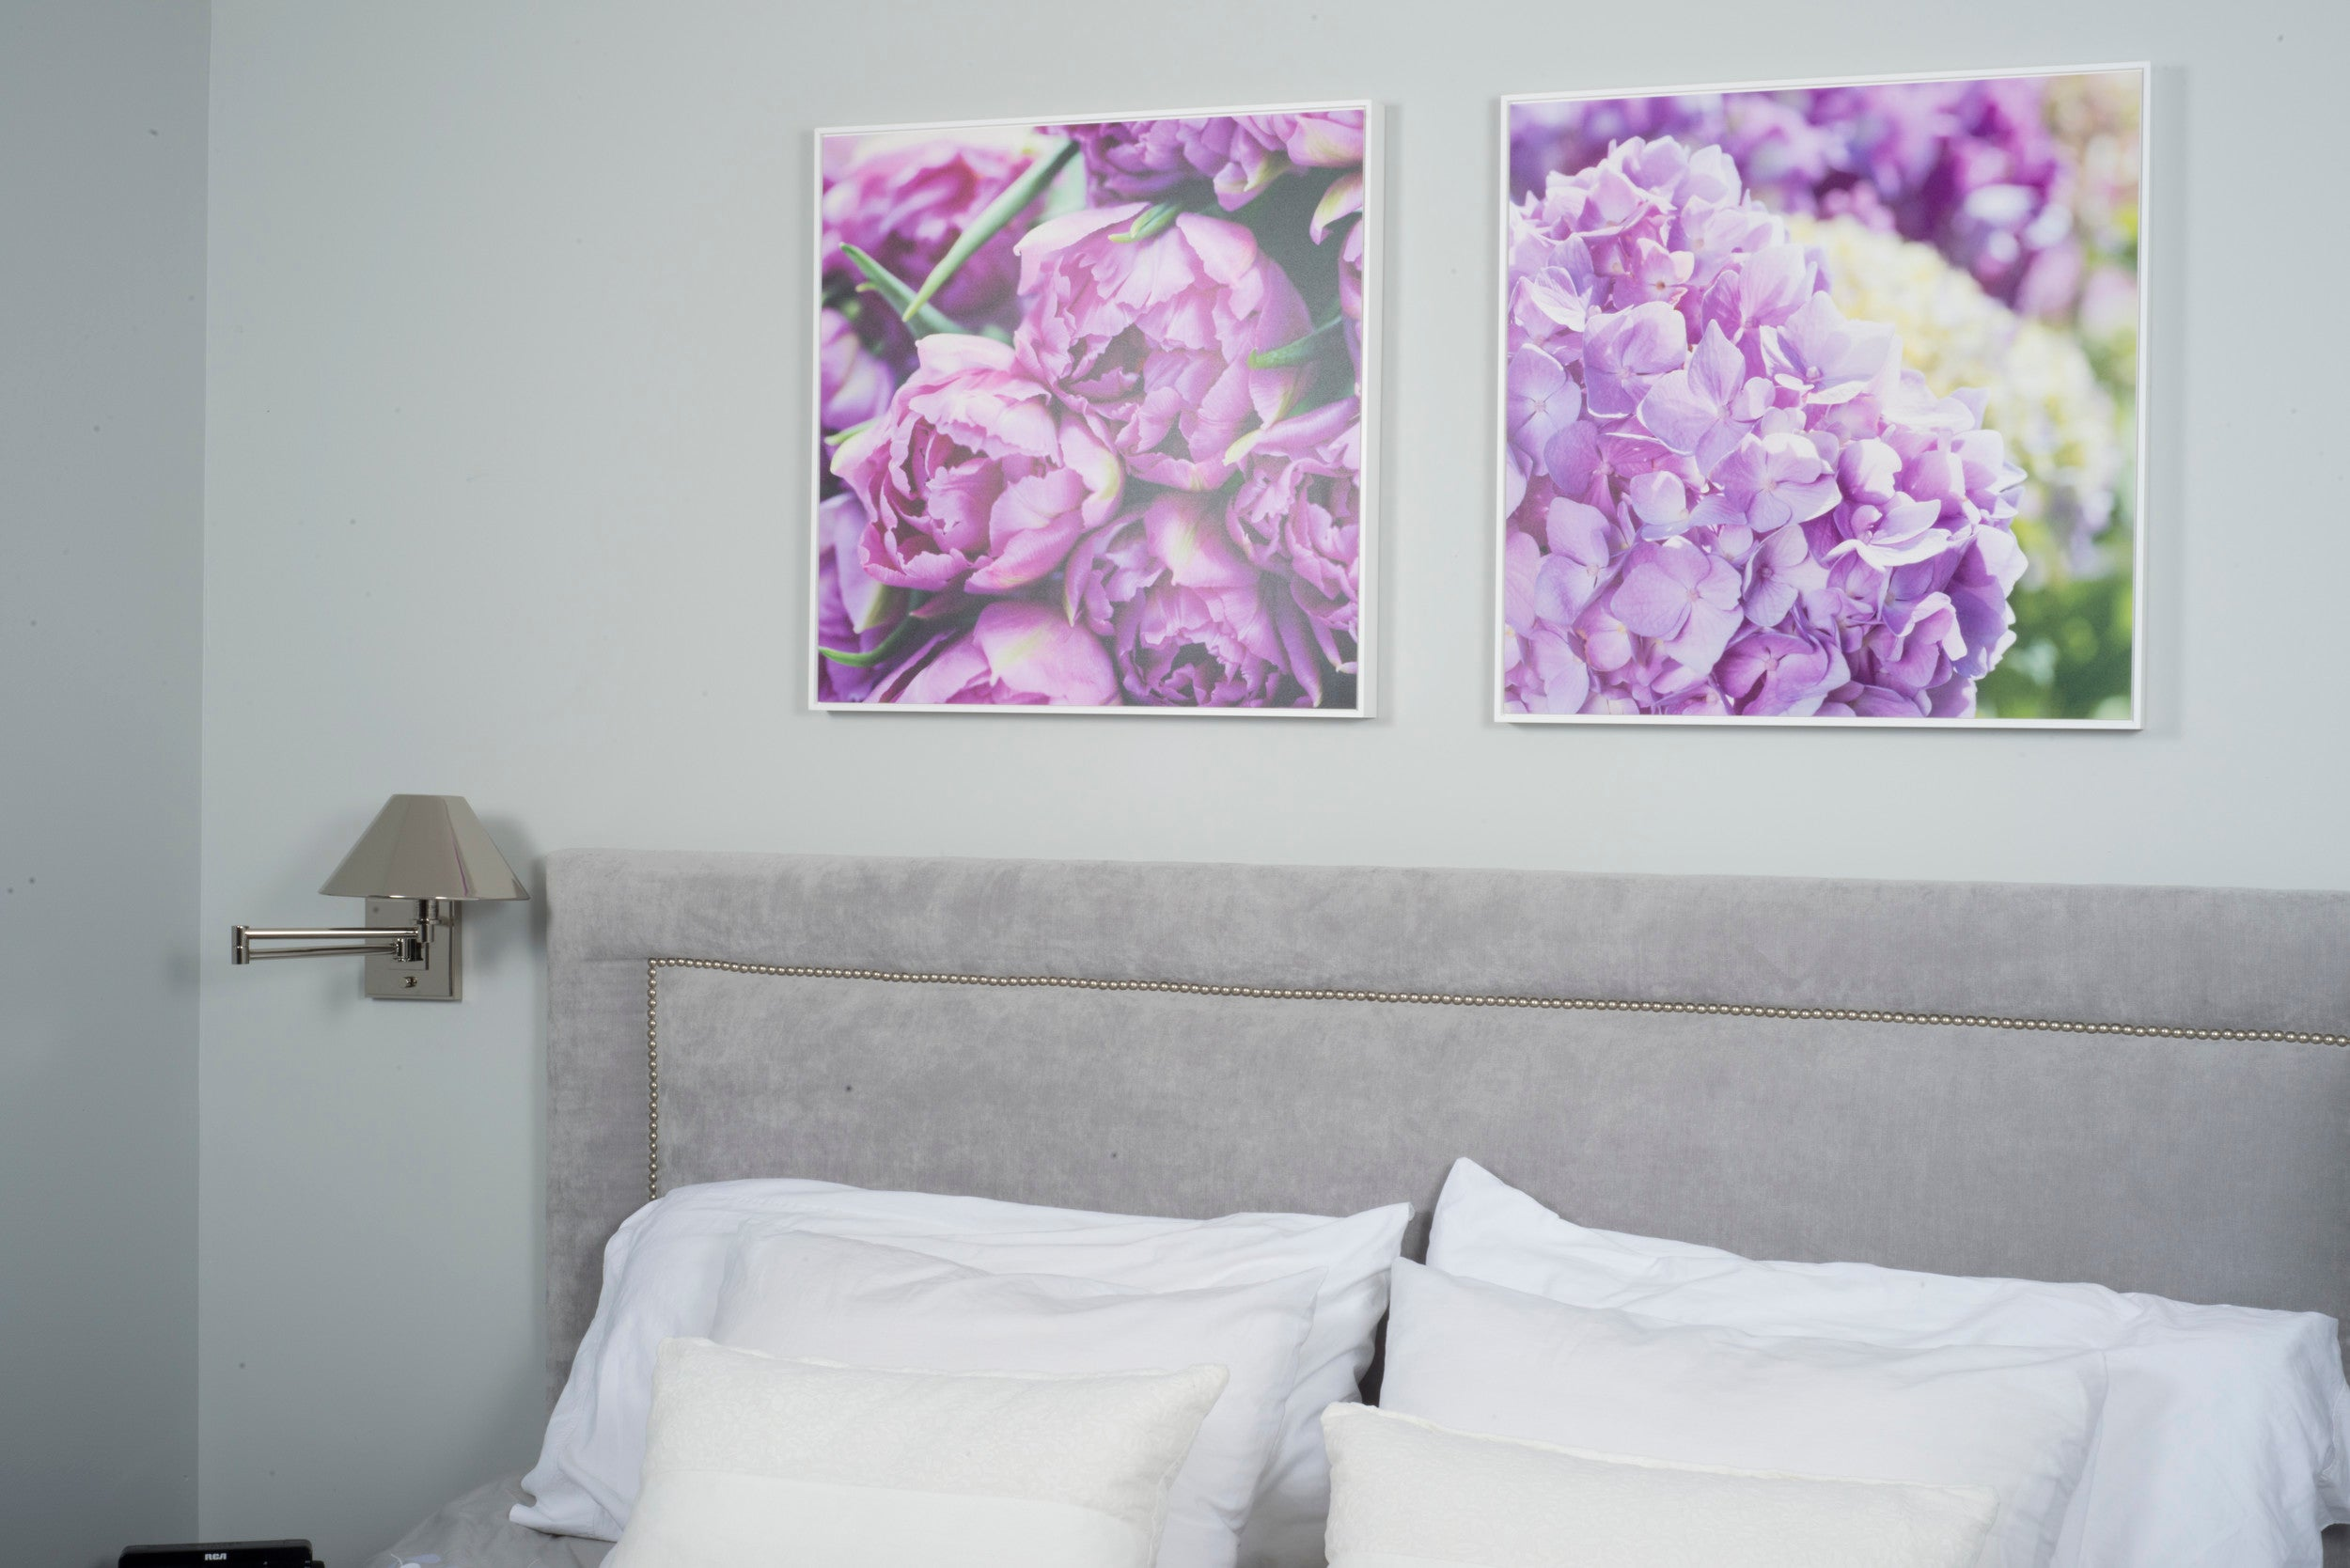 Shadow Box Wall Art - Custom Gallery Boxes with White Floater Frames